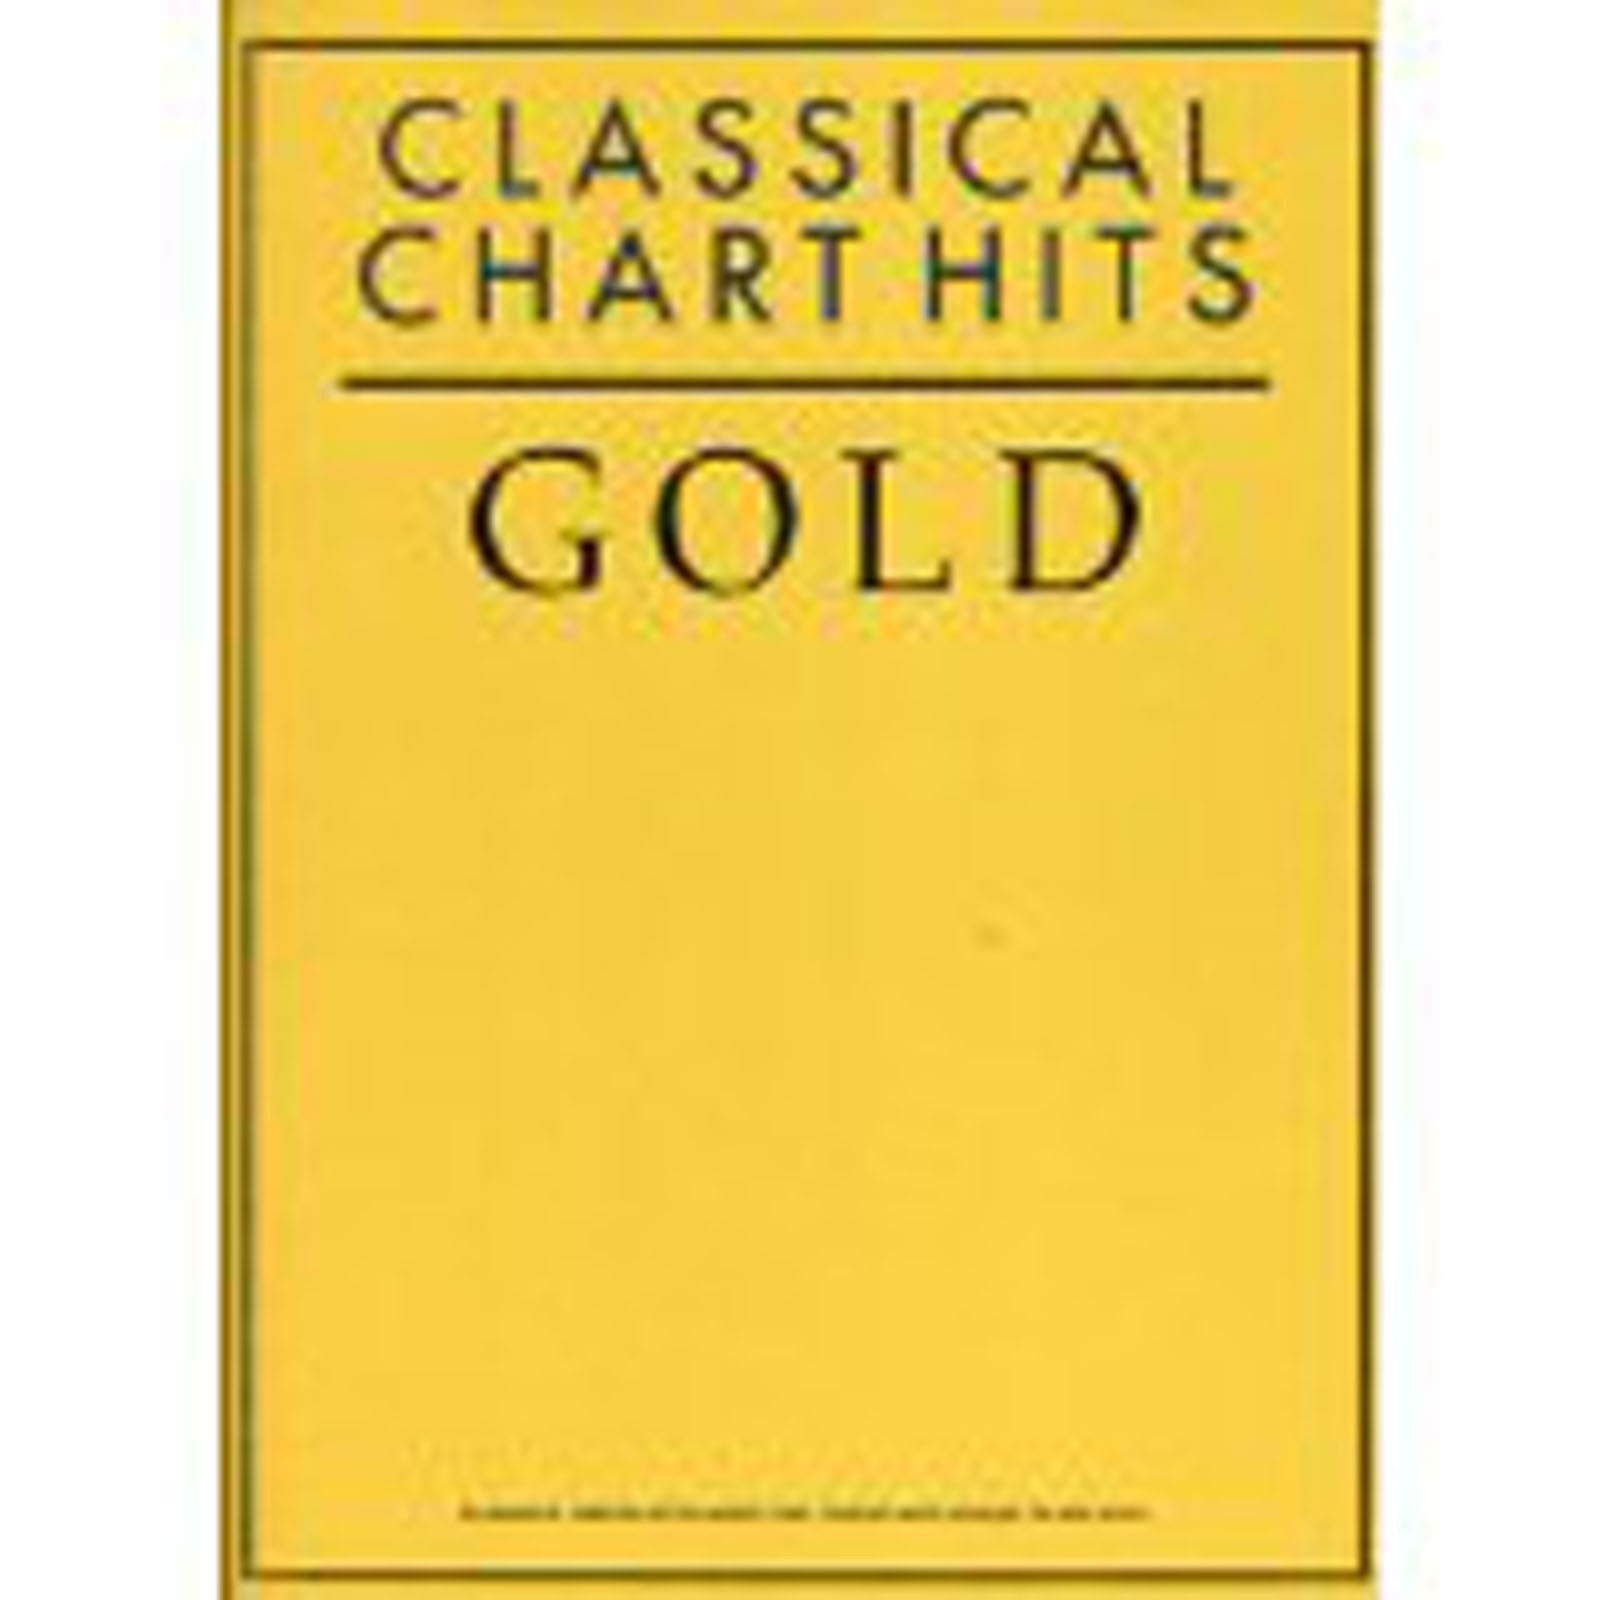 Classical Chart Hits Gold Piano Solo Sheet Music Book B59